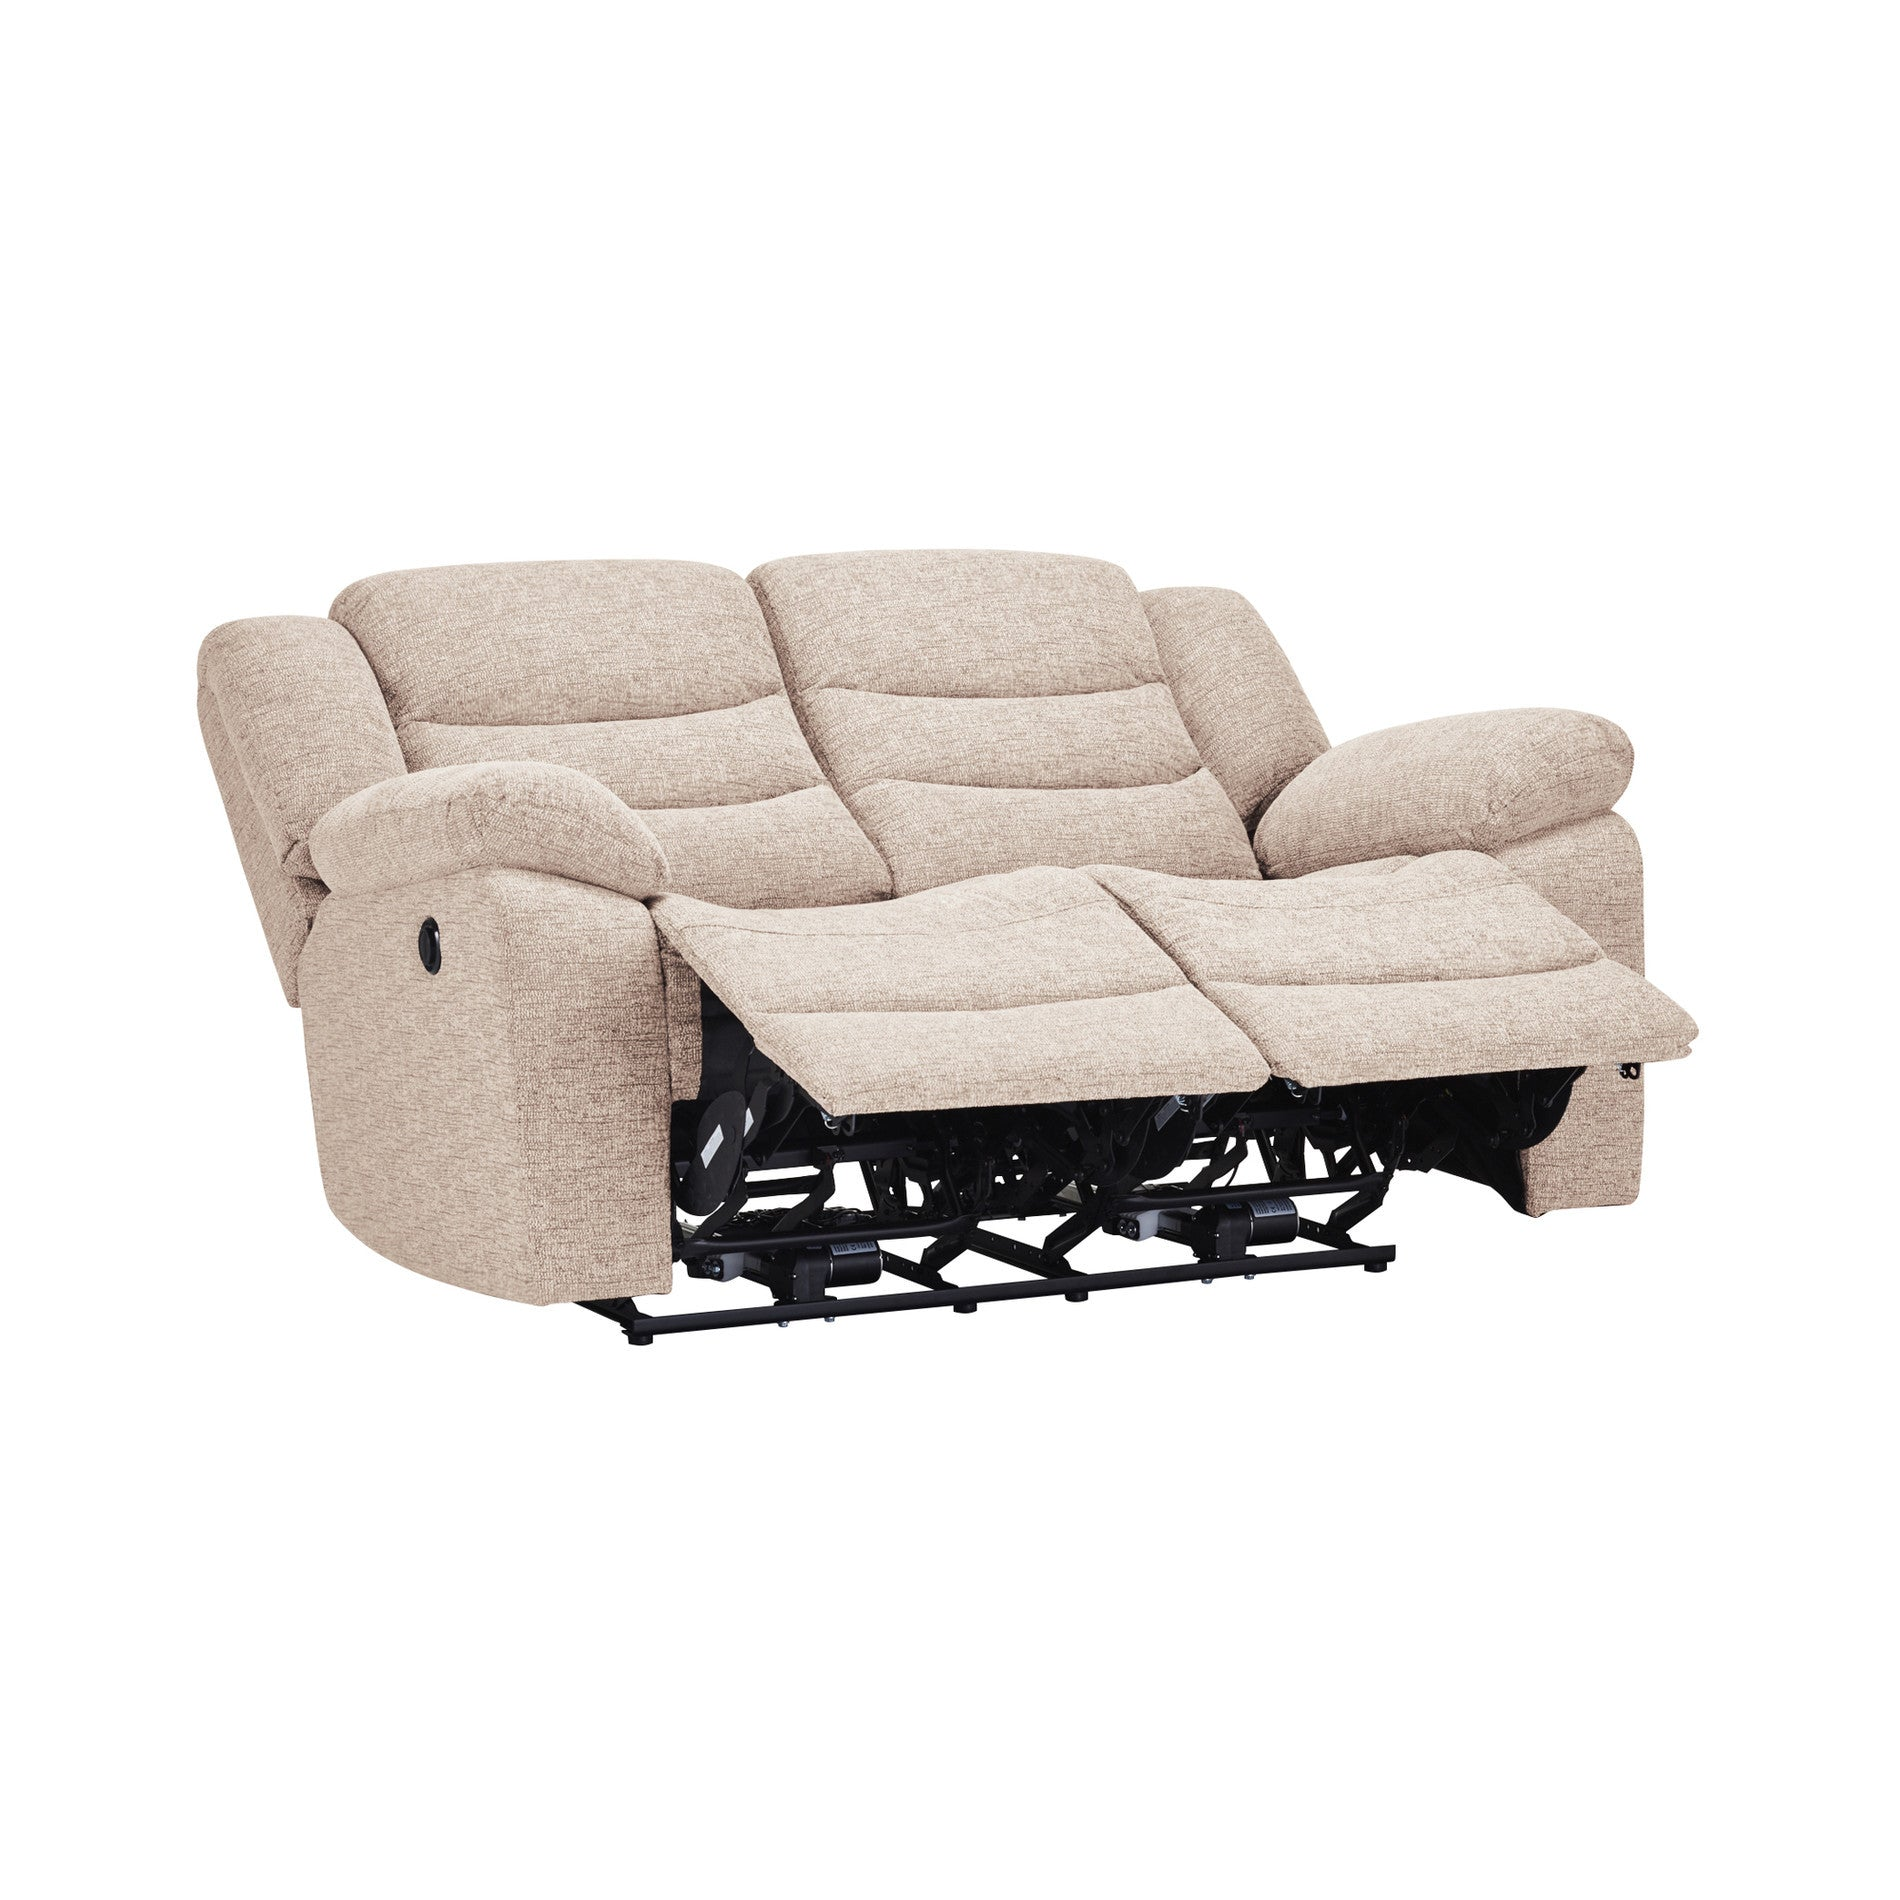 Grayson 2 Seater Electric Recliner Sofa - Oatmeal Fabric  sc 1 st  Sofa Store Spain - Shopify : two seater electric recliner sofa - islam-shia.org